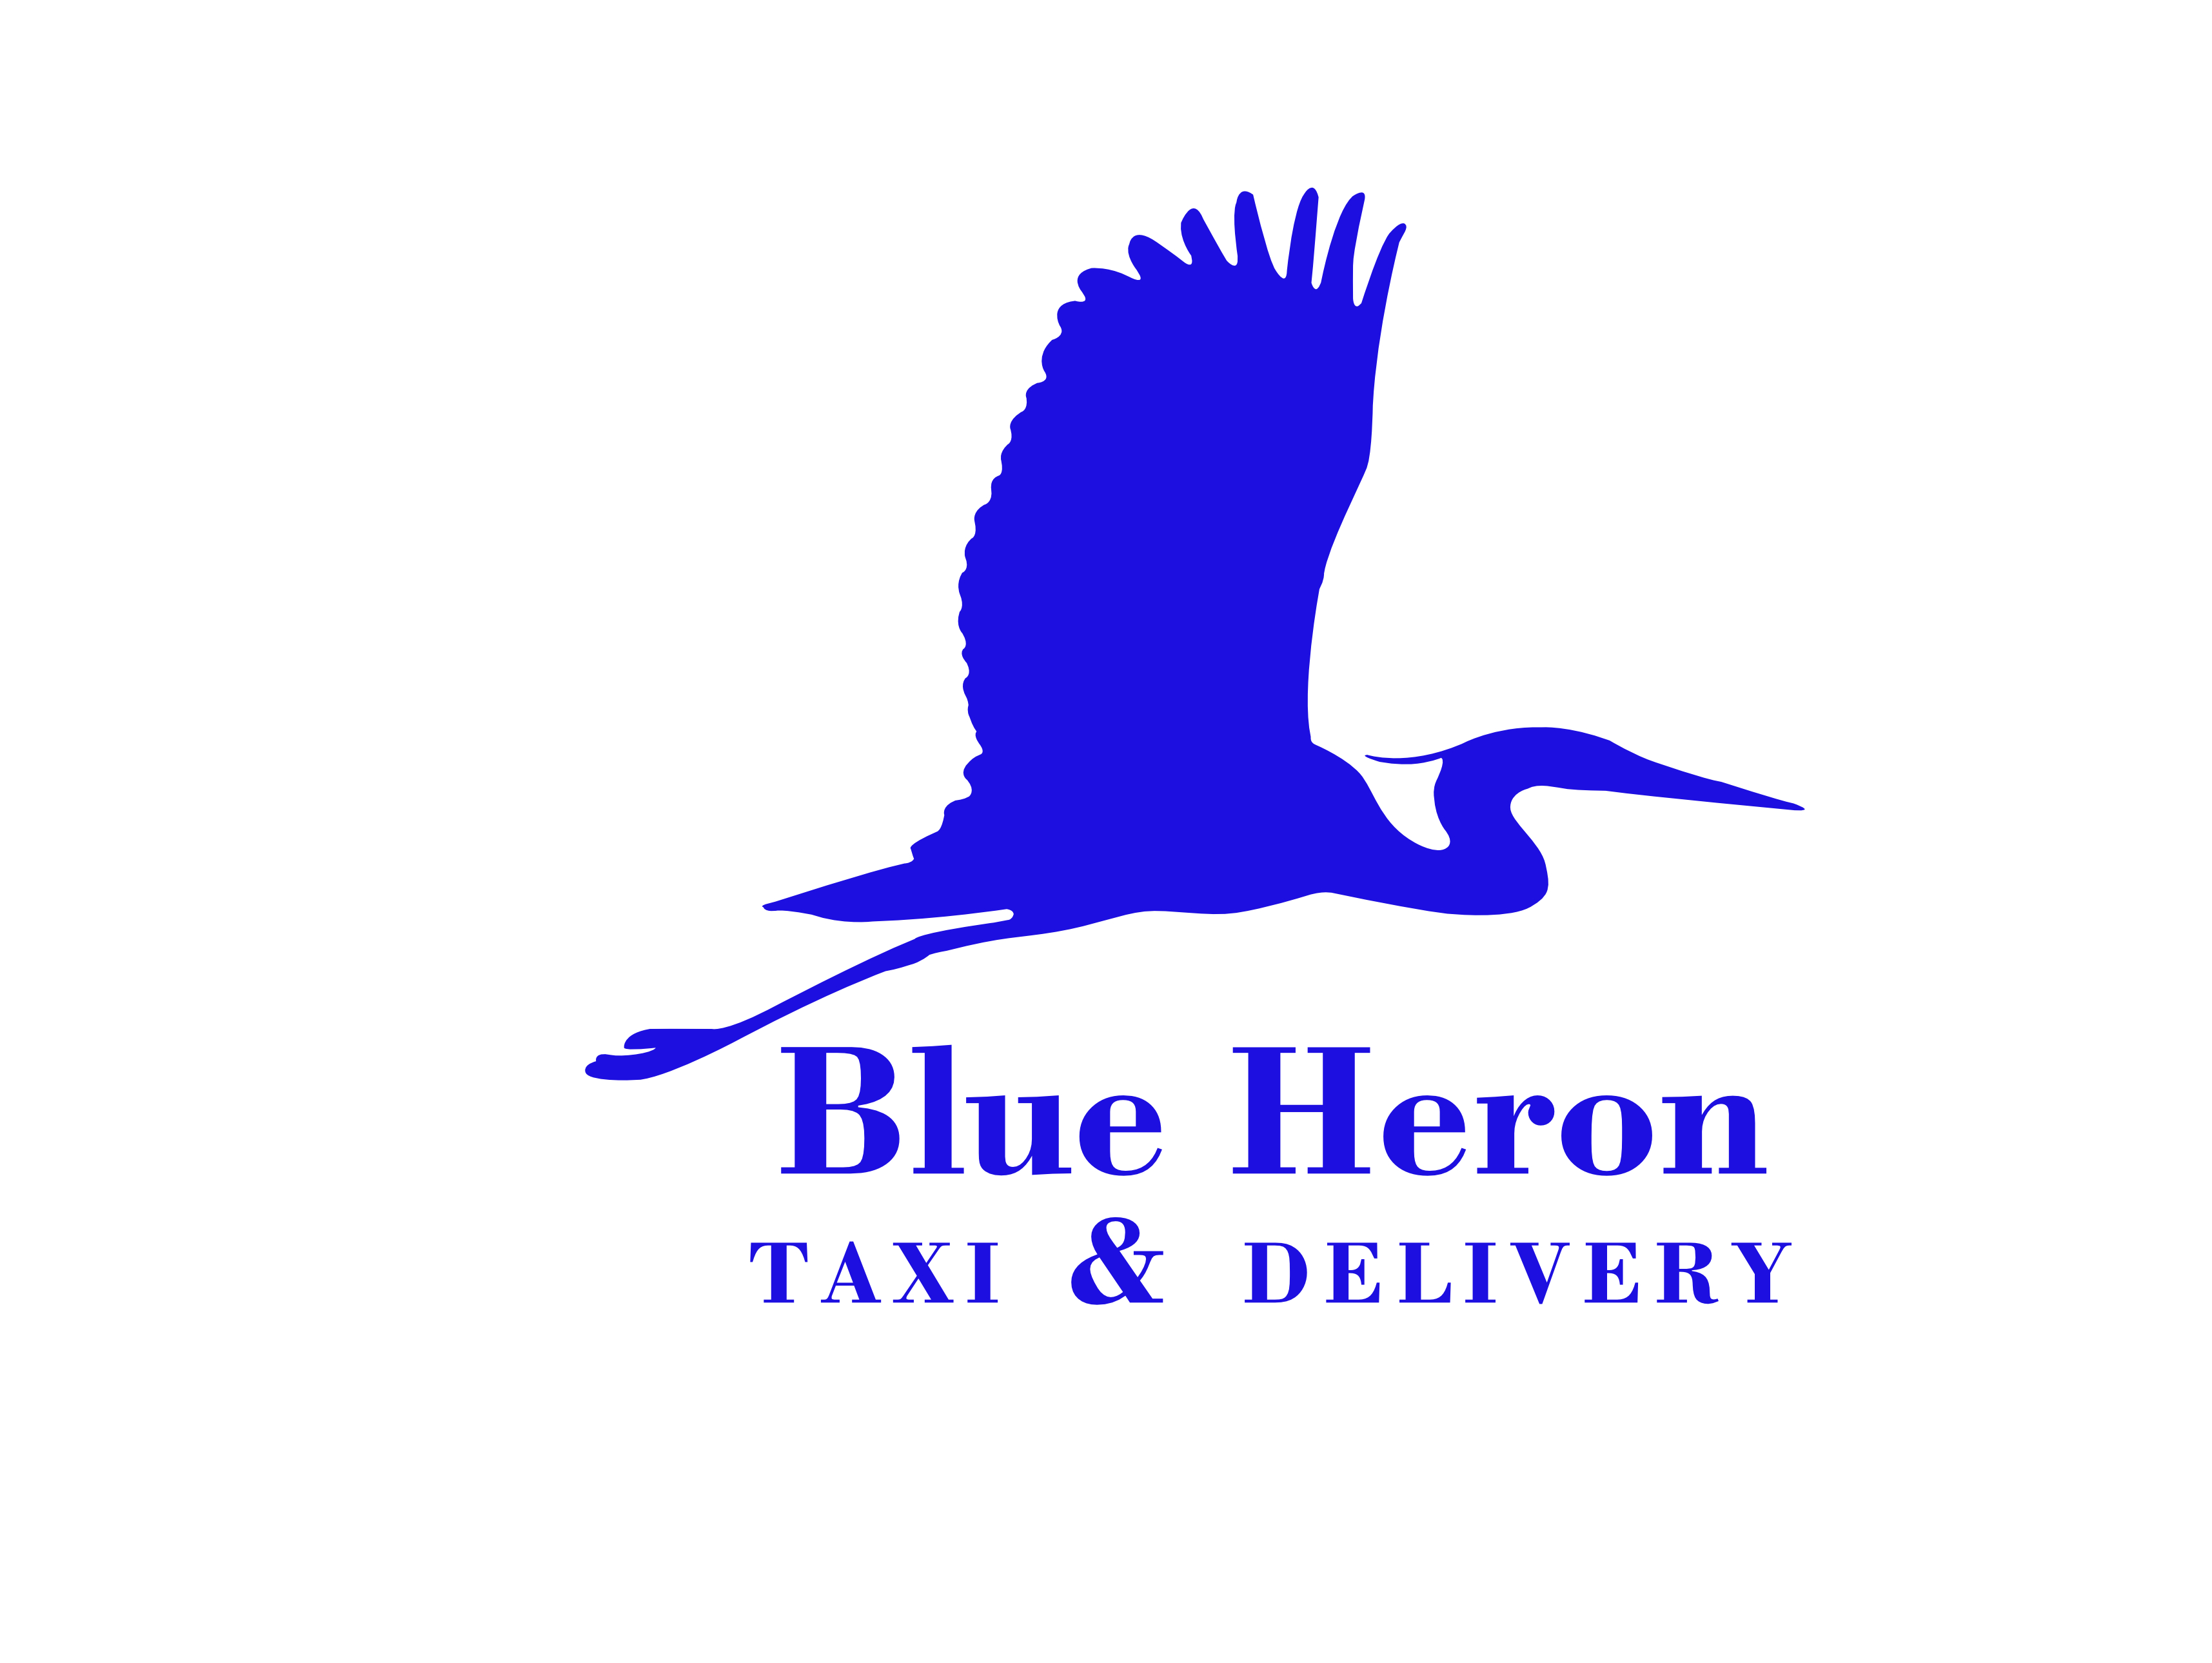 Blue Heron Taxi and Delivery logo